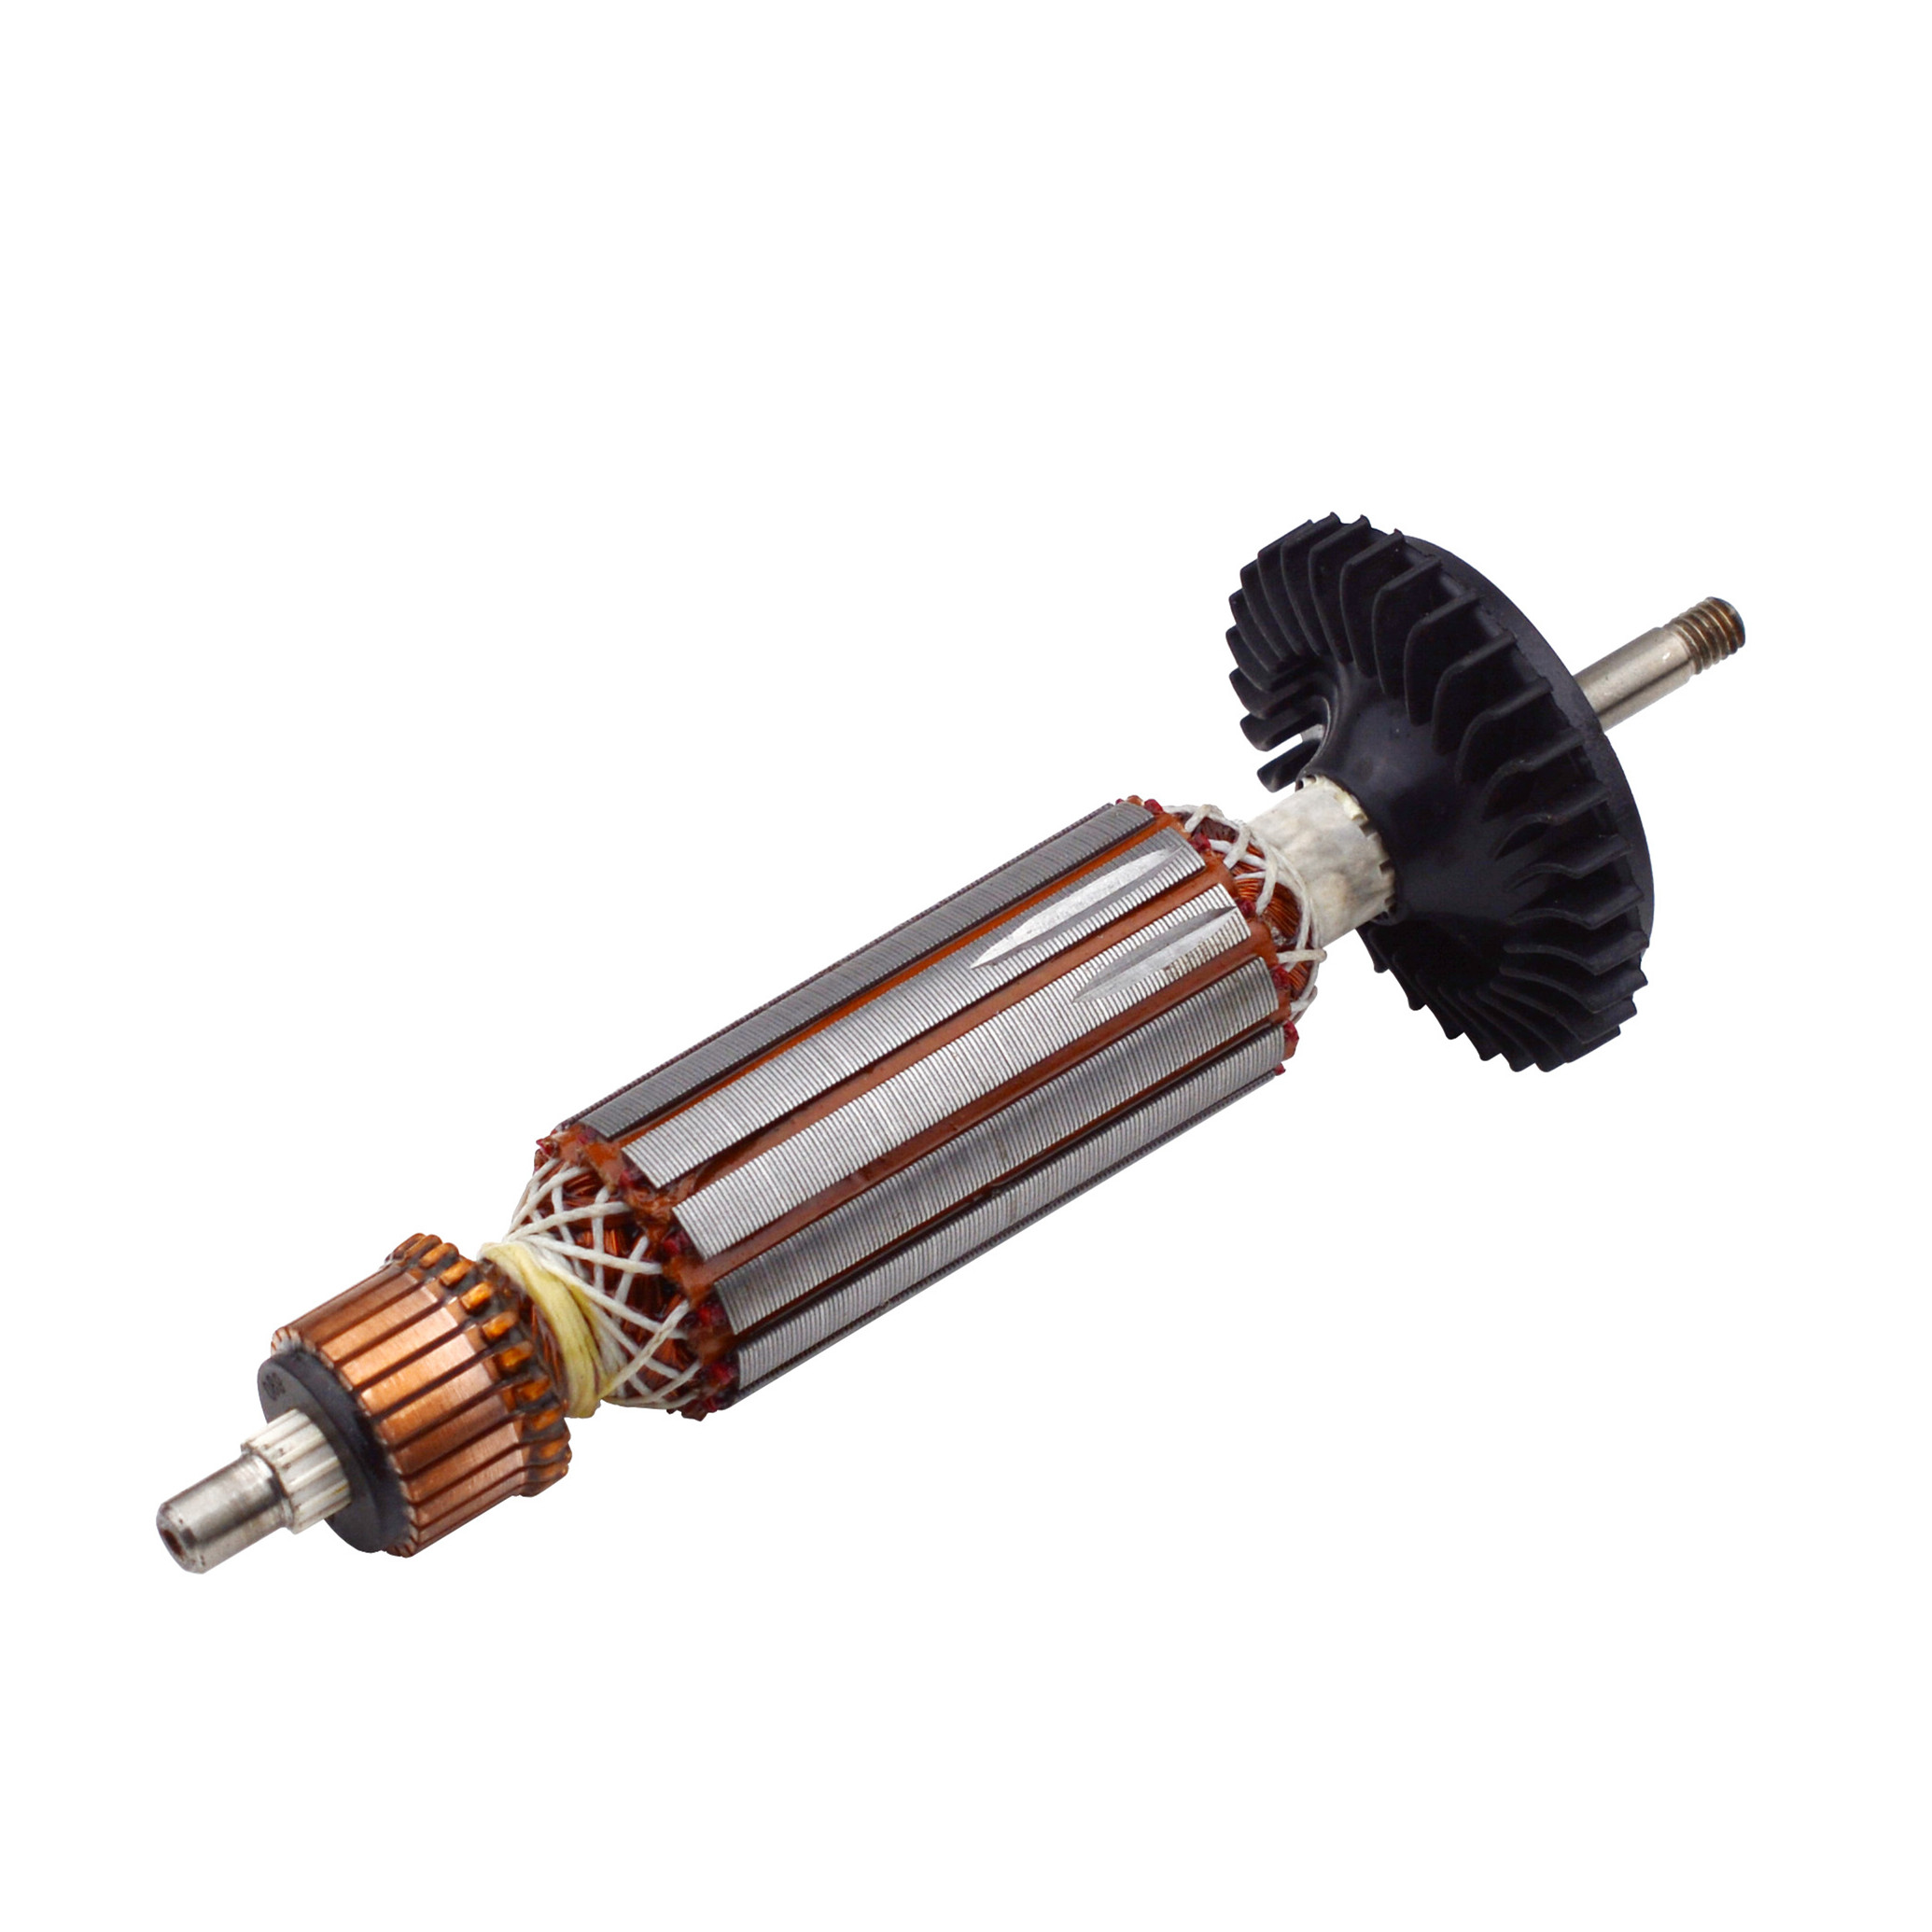 AC 220V/230V Armature Rotor Replacement For BOSCH GWS7 GWS 7-100 GWS 7-125 Angle Grinder Spare Parts